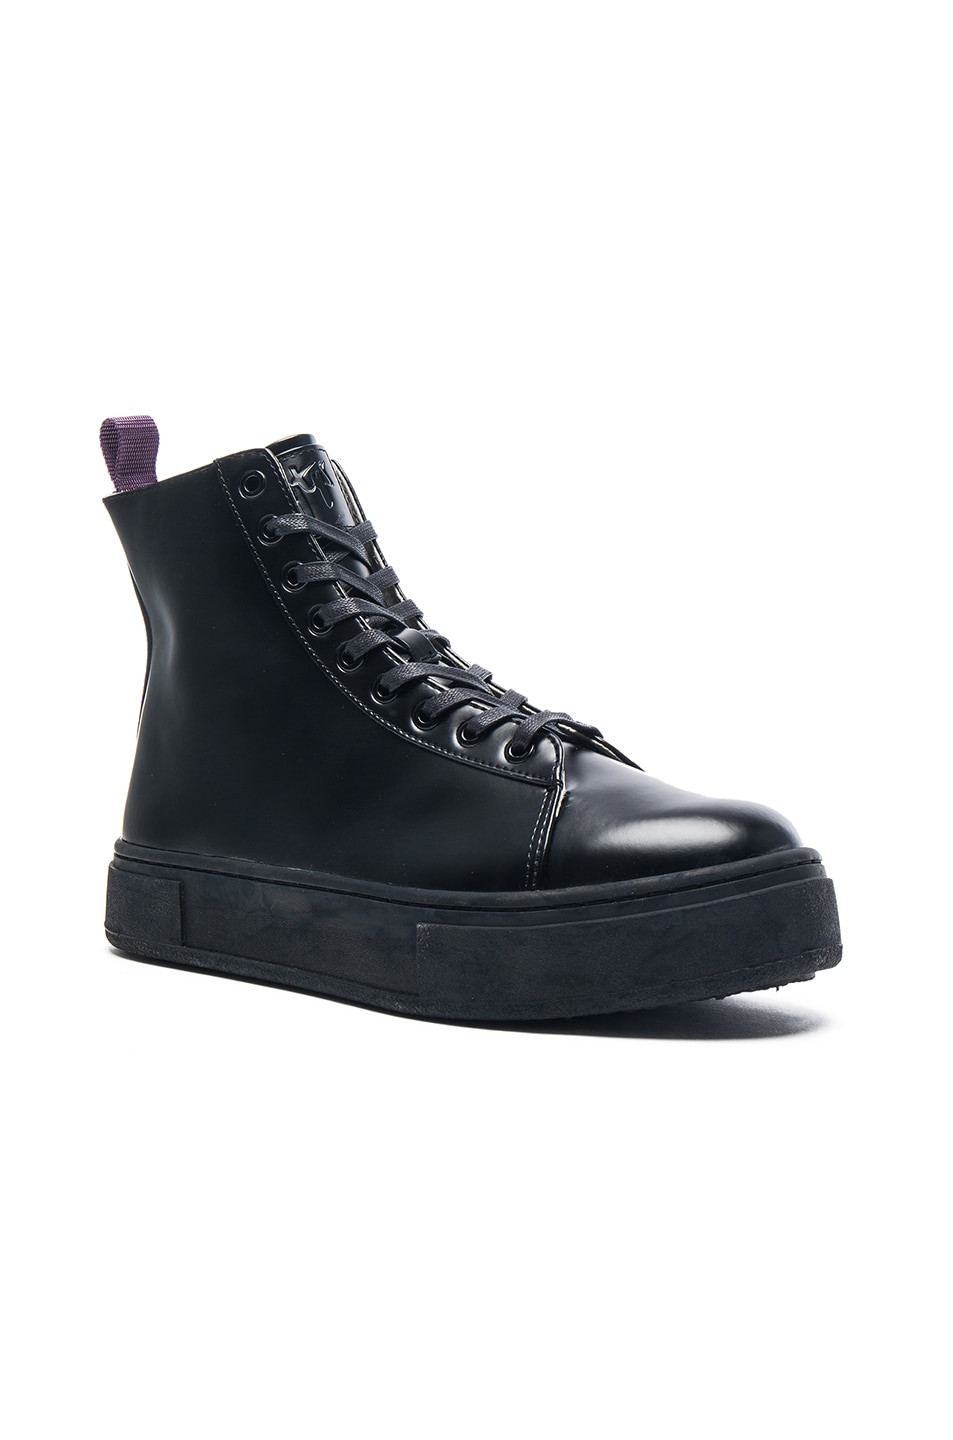 Image 1 of Eytys Kibo Leather Boots in Black